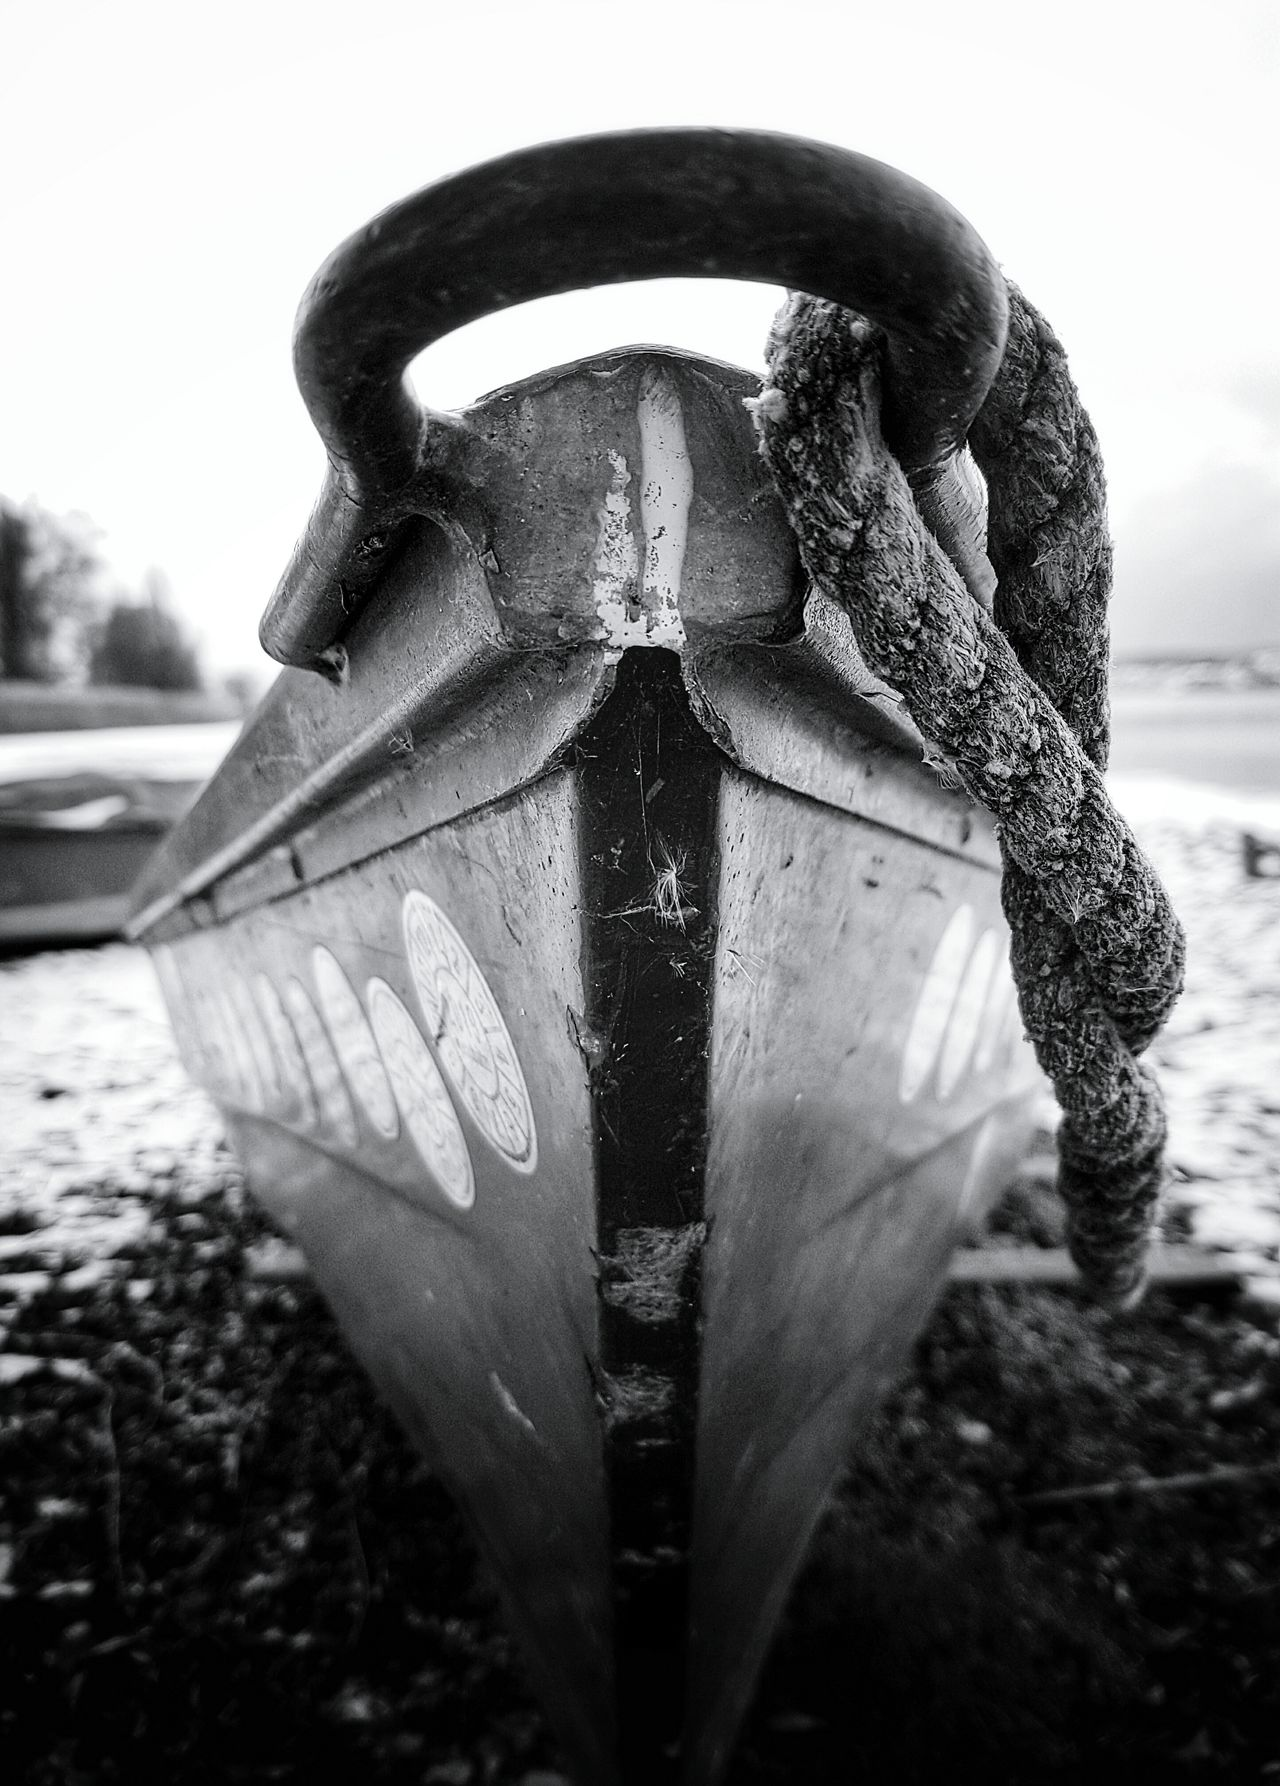 Close-up Outdoors Winter Mypointofview Landscapes Monochrome Collection Black & White Monochrome Photograhy Taking Photos Cold Temperature Tranquil Scene Boat Old Boats Ruins Old Boat Landscape_Collection Storm Cloud Cloud - Sky Tranquility Nature Lakeshore Frozen Snow Monochrome _ Collection Lakescape Lake